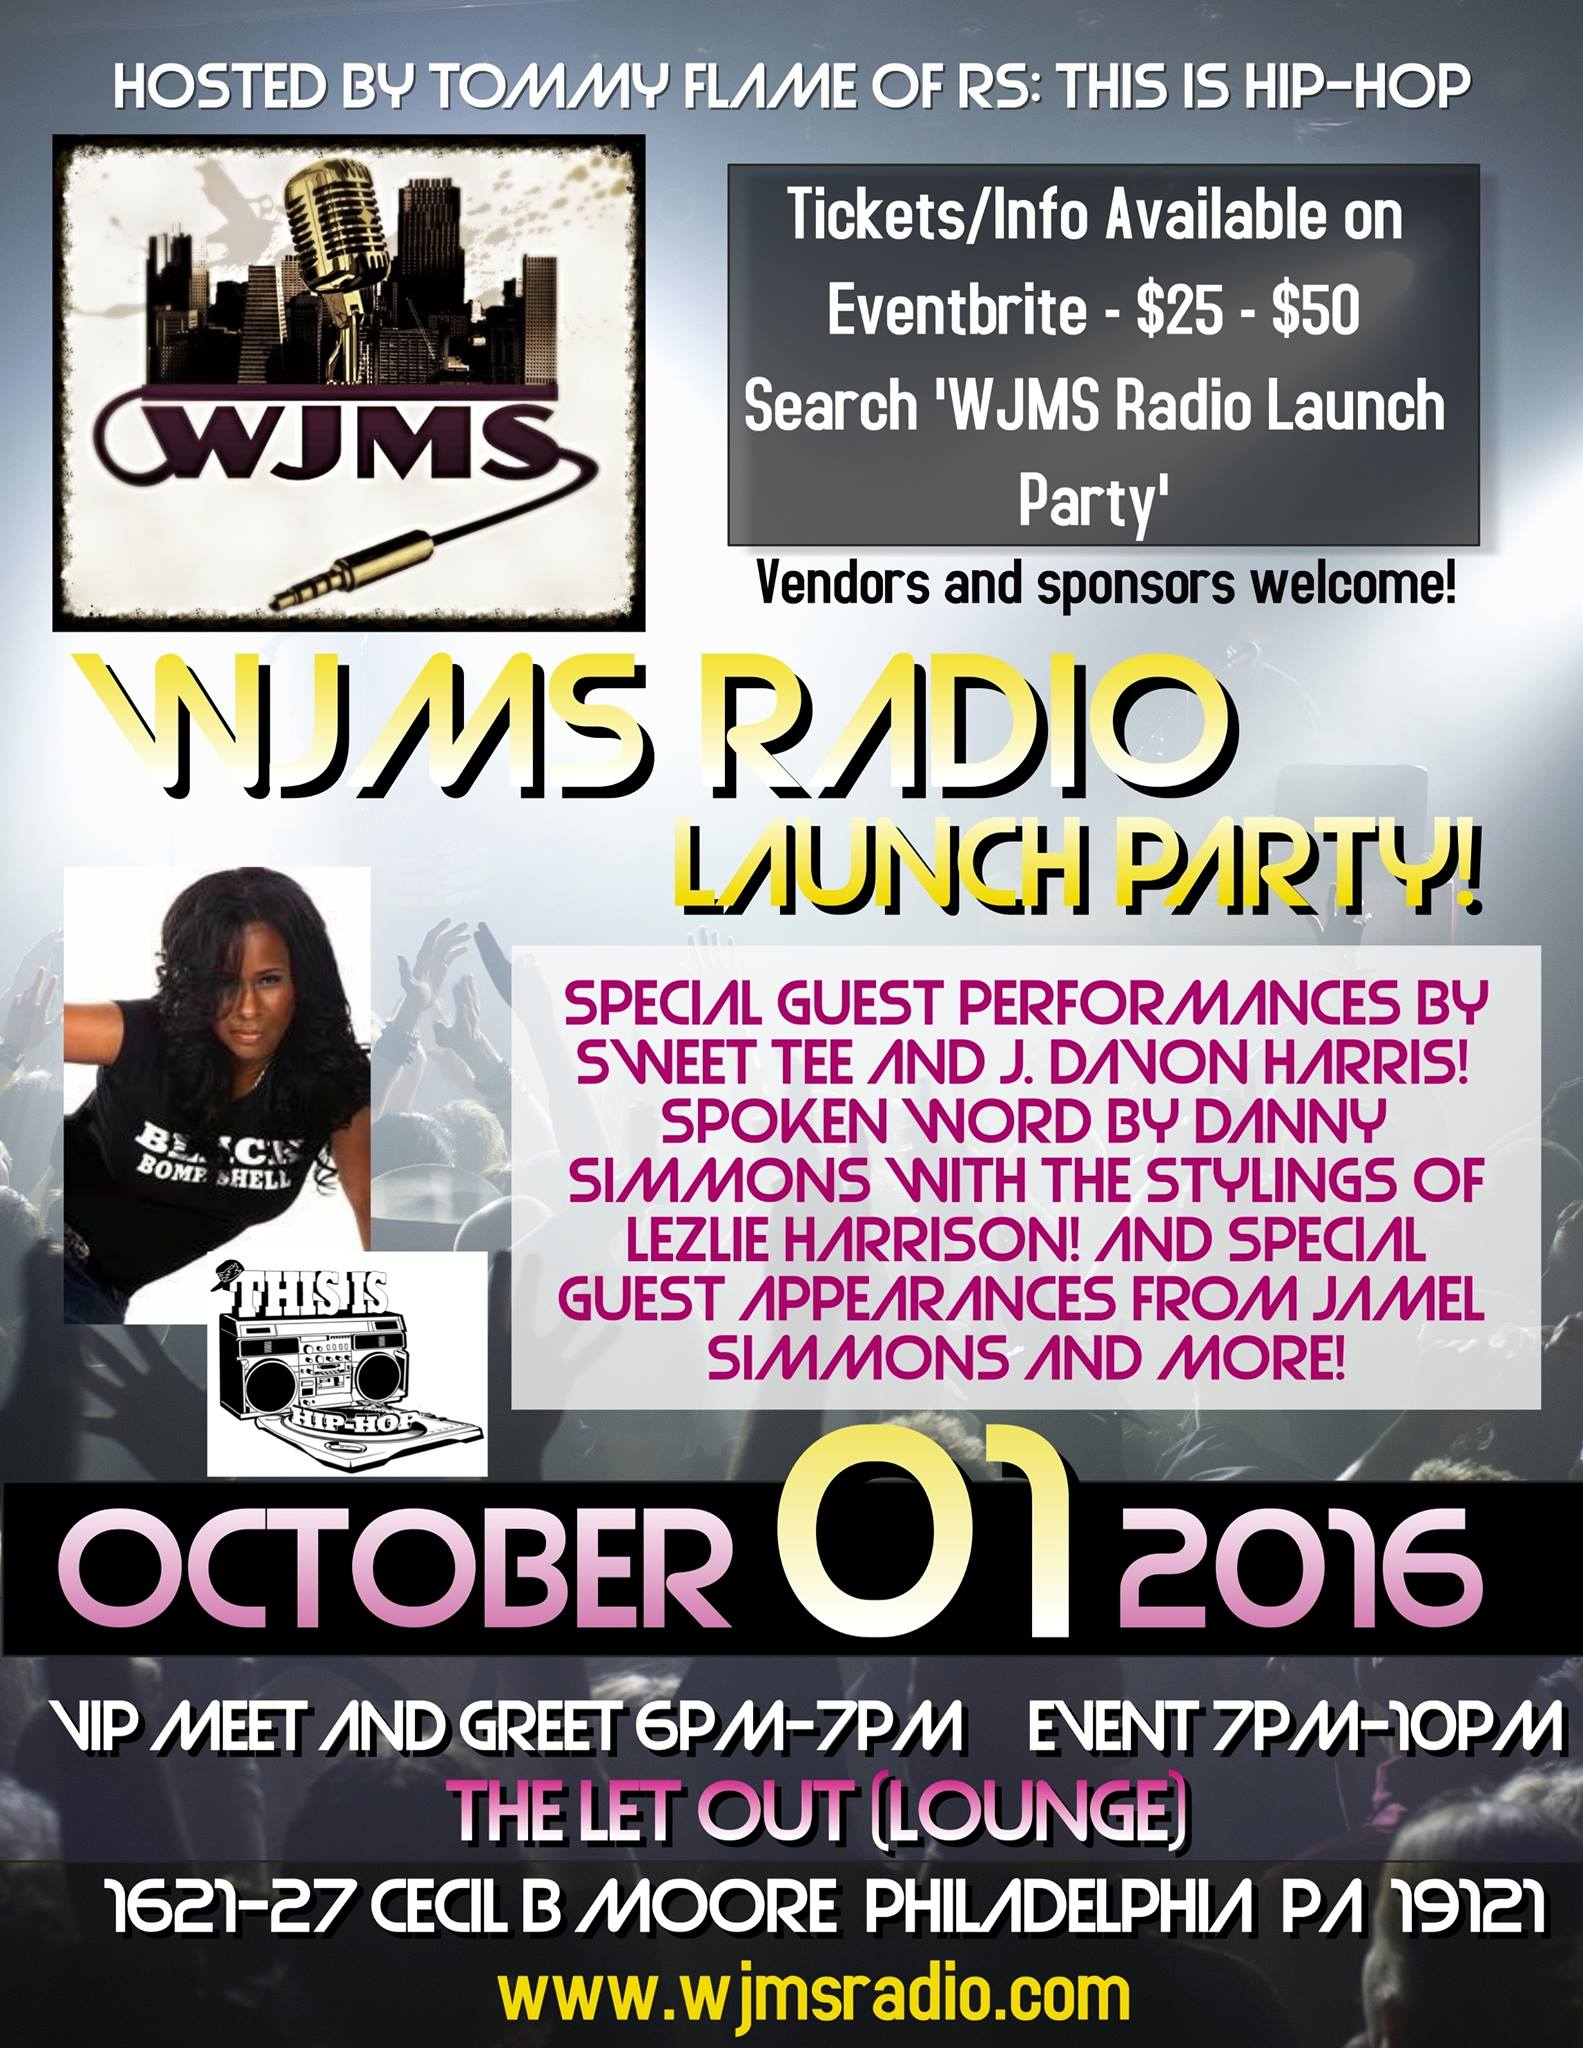 WJMS Radio Launch Party